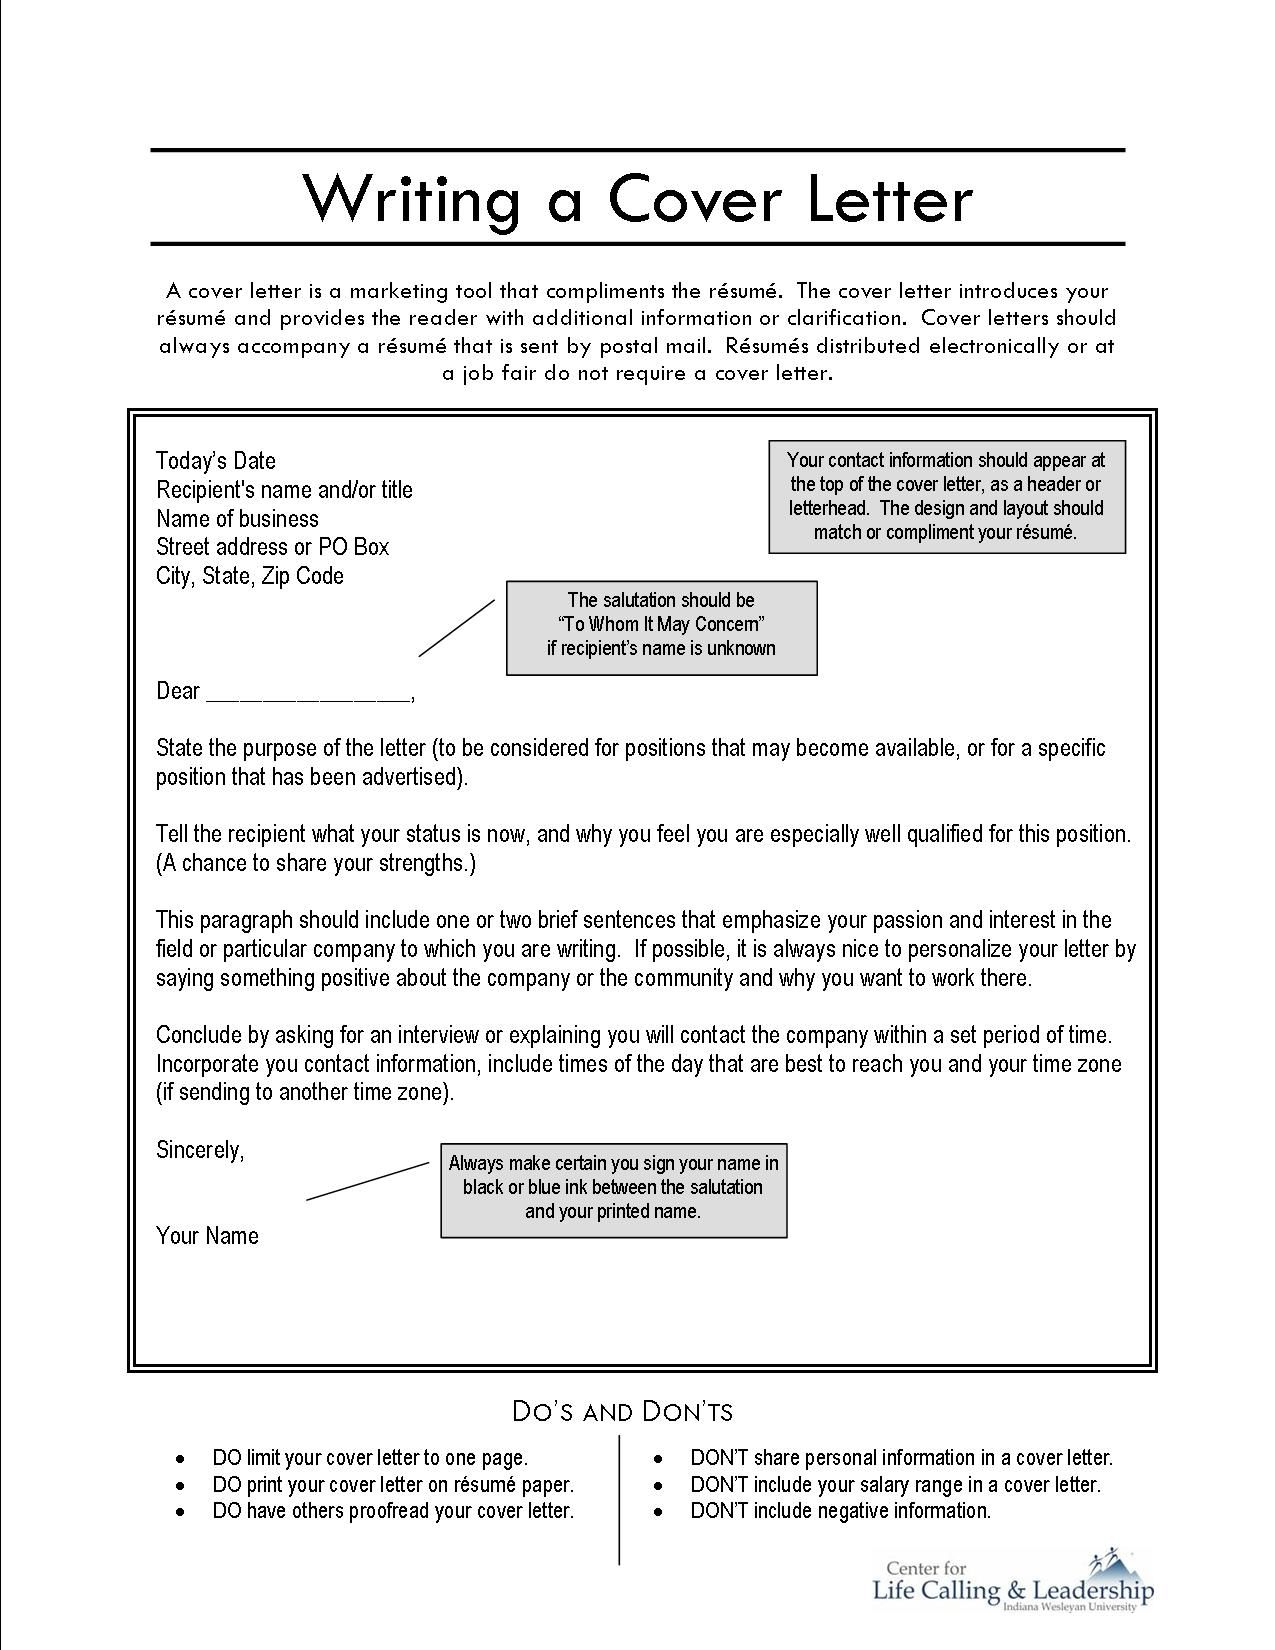 Writing a cover letter job application resources pinterest the performers cover letter putting the best spin on your correspondence coach for actors and audio book narrators madrichimfo Image collections